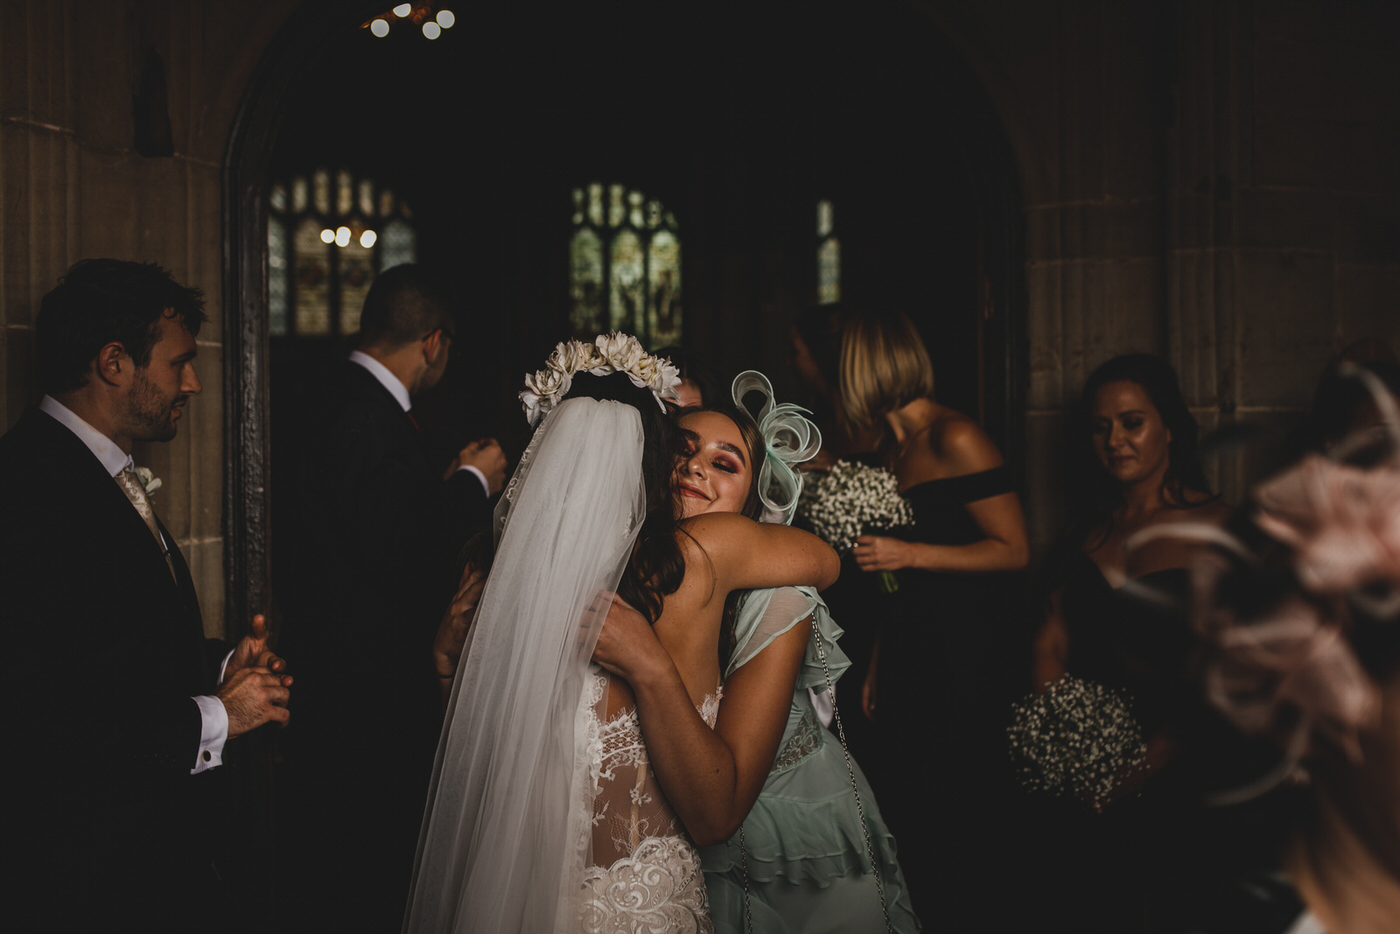 a guest gives the bride a hug as they stand in the church entrance sheltering from the rain